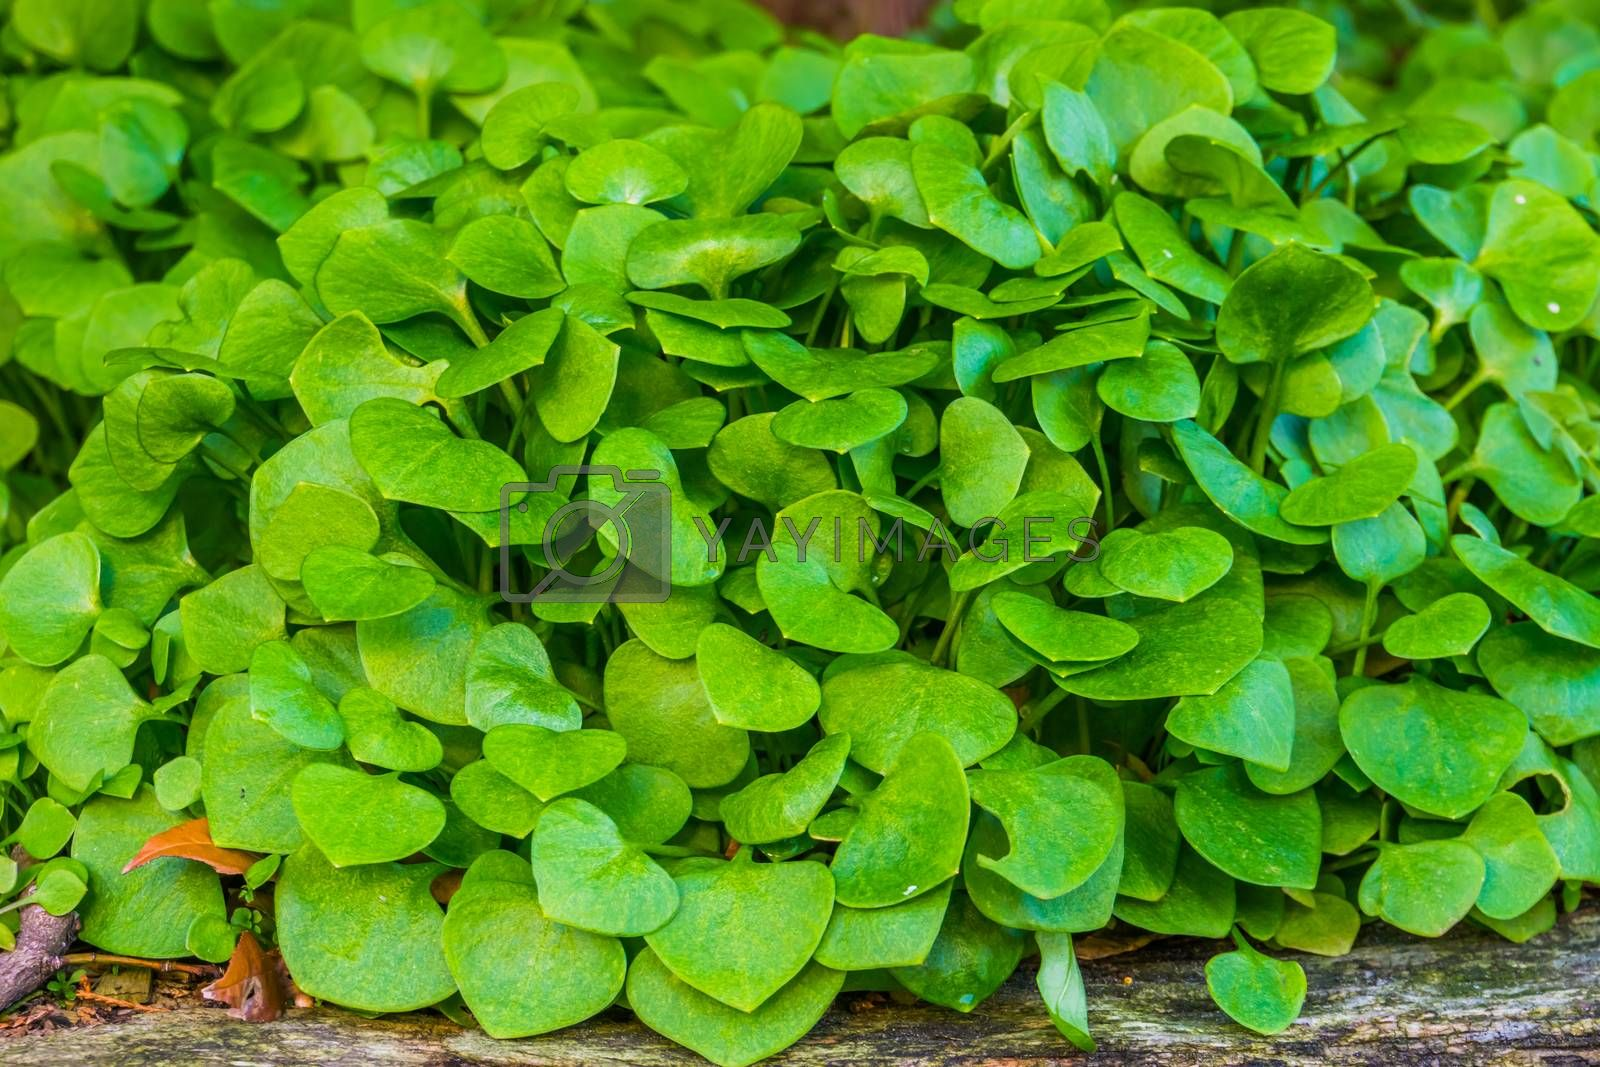 Winter purslane in macro closeup, organic cultivated garden plants, healthy green vegetables by charlotte Bleijenberg